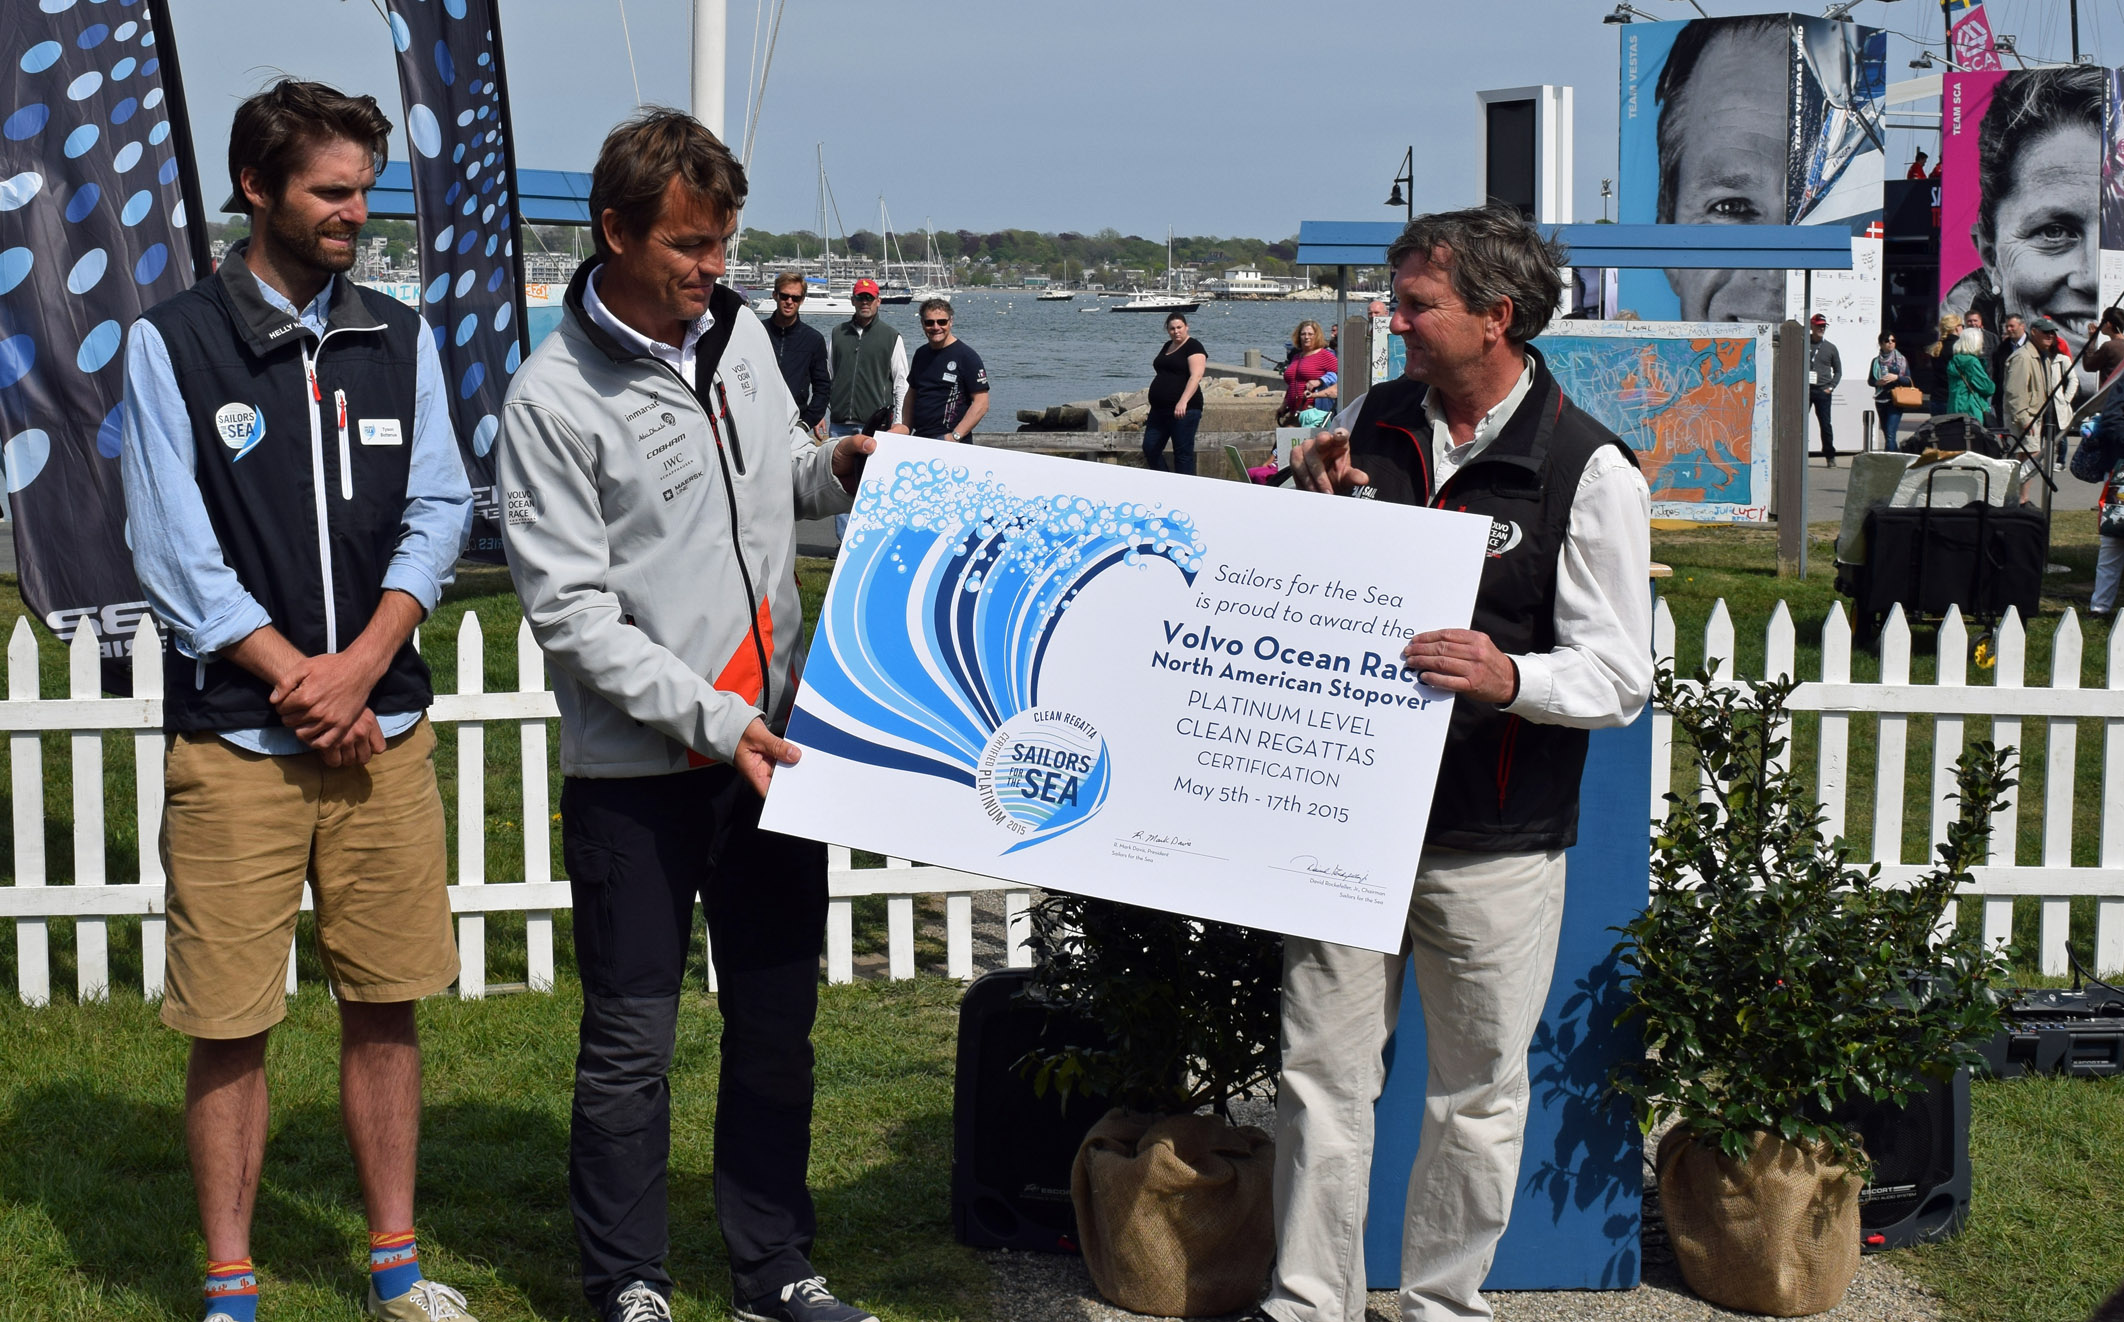 Tyson Bottenus awards the Platinum Level Clean Regattas Certification to the Knut Frostad, CEO of the Volvo Ocean Race and Brad Read, Executive Director of Sail Newport.